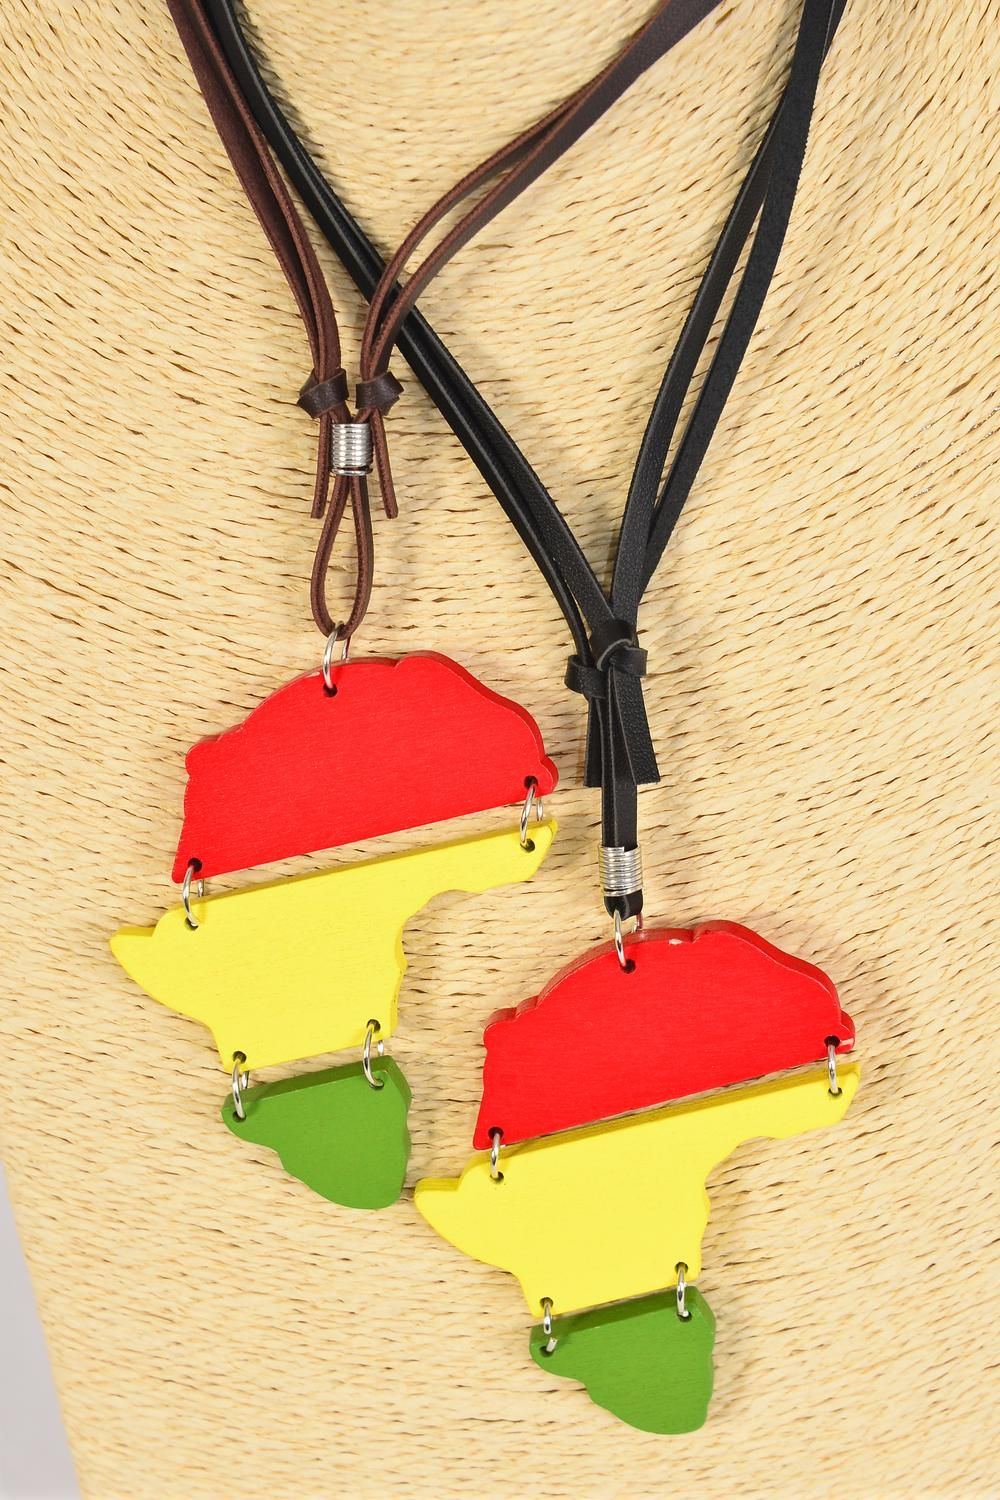 "Men's Leather Necklace Wood Africa Continent/DZ match 03029 **Adjustable** Pendant Size-3""x 2.75"" Wide,4 of each Color Asst,Hang Tag & OPP Bag & UPC Code"